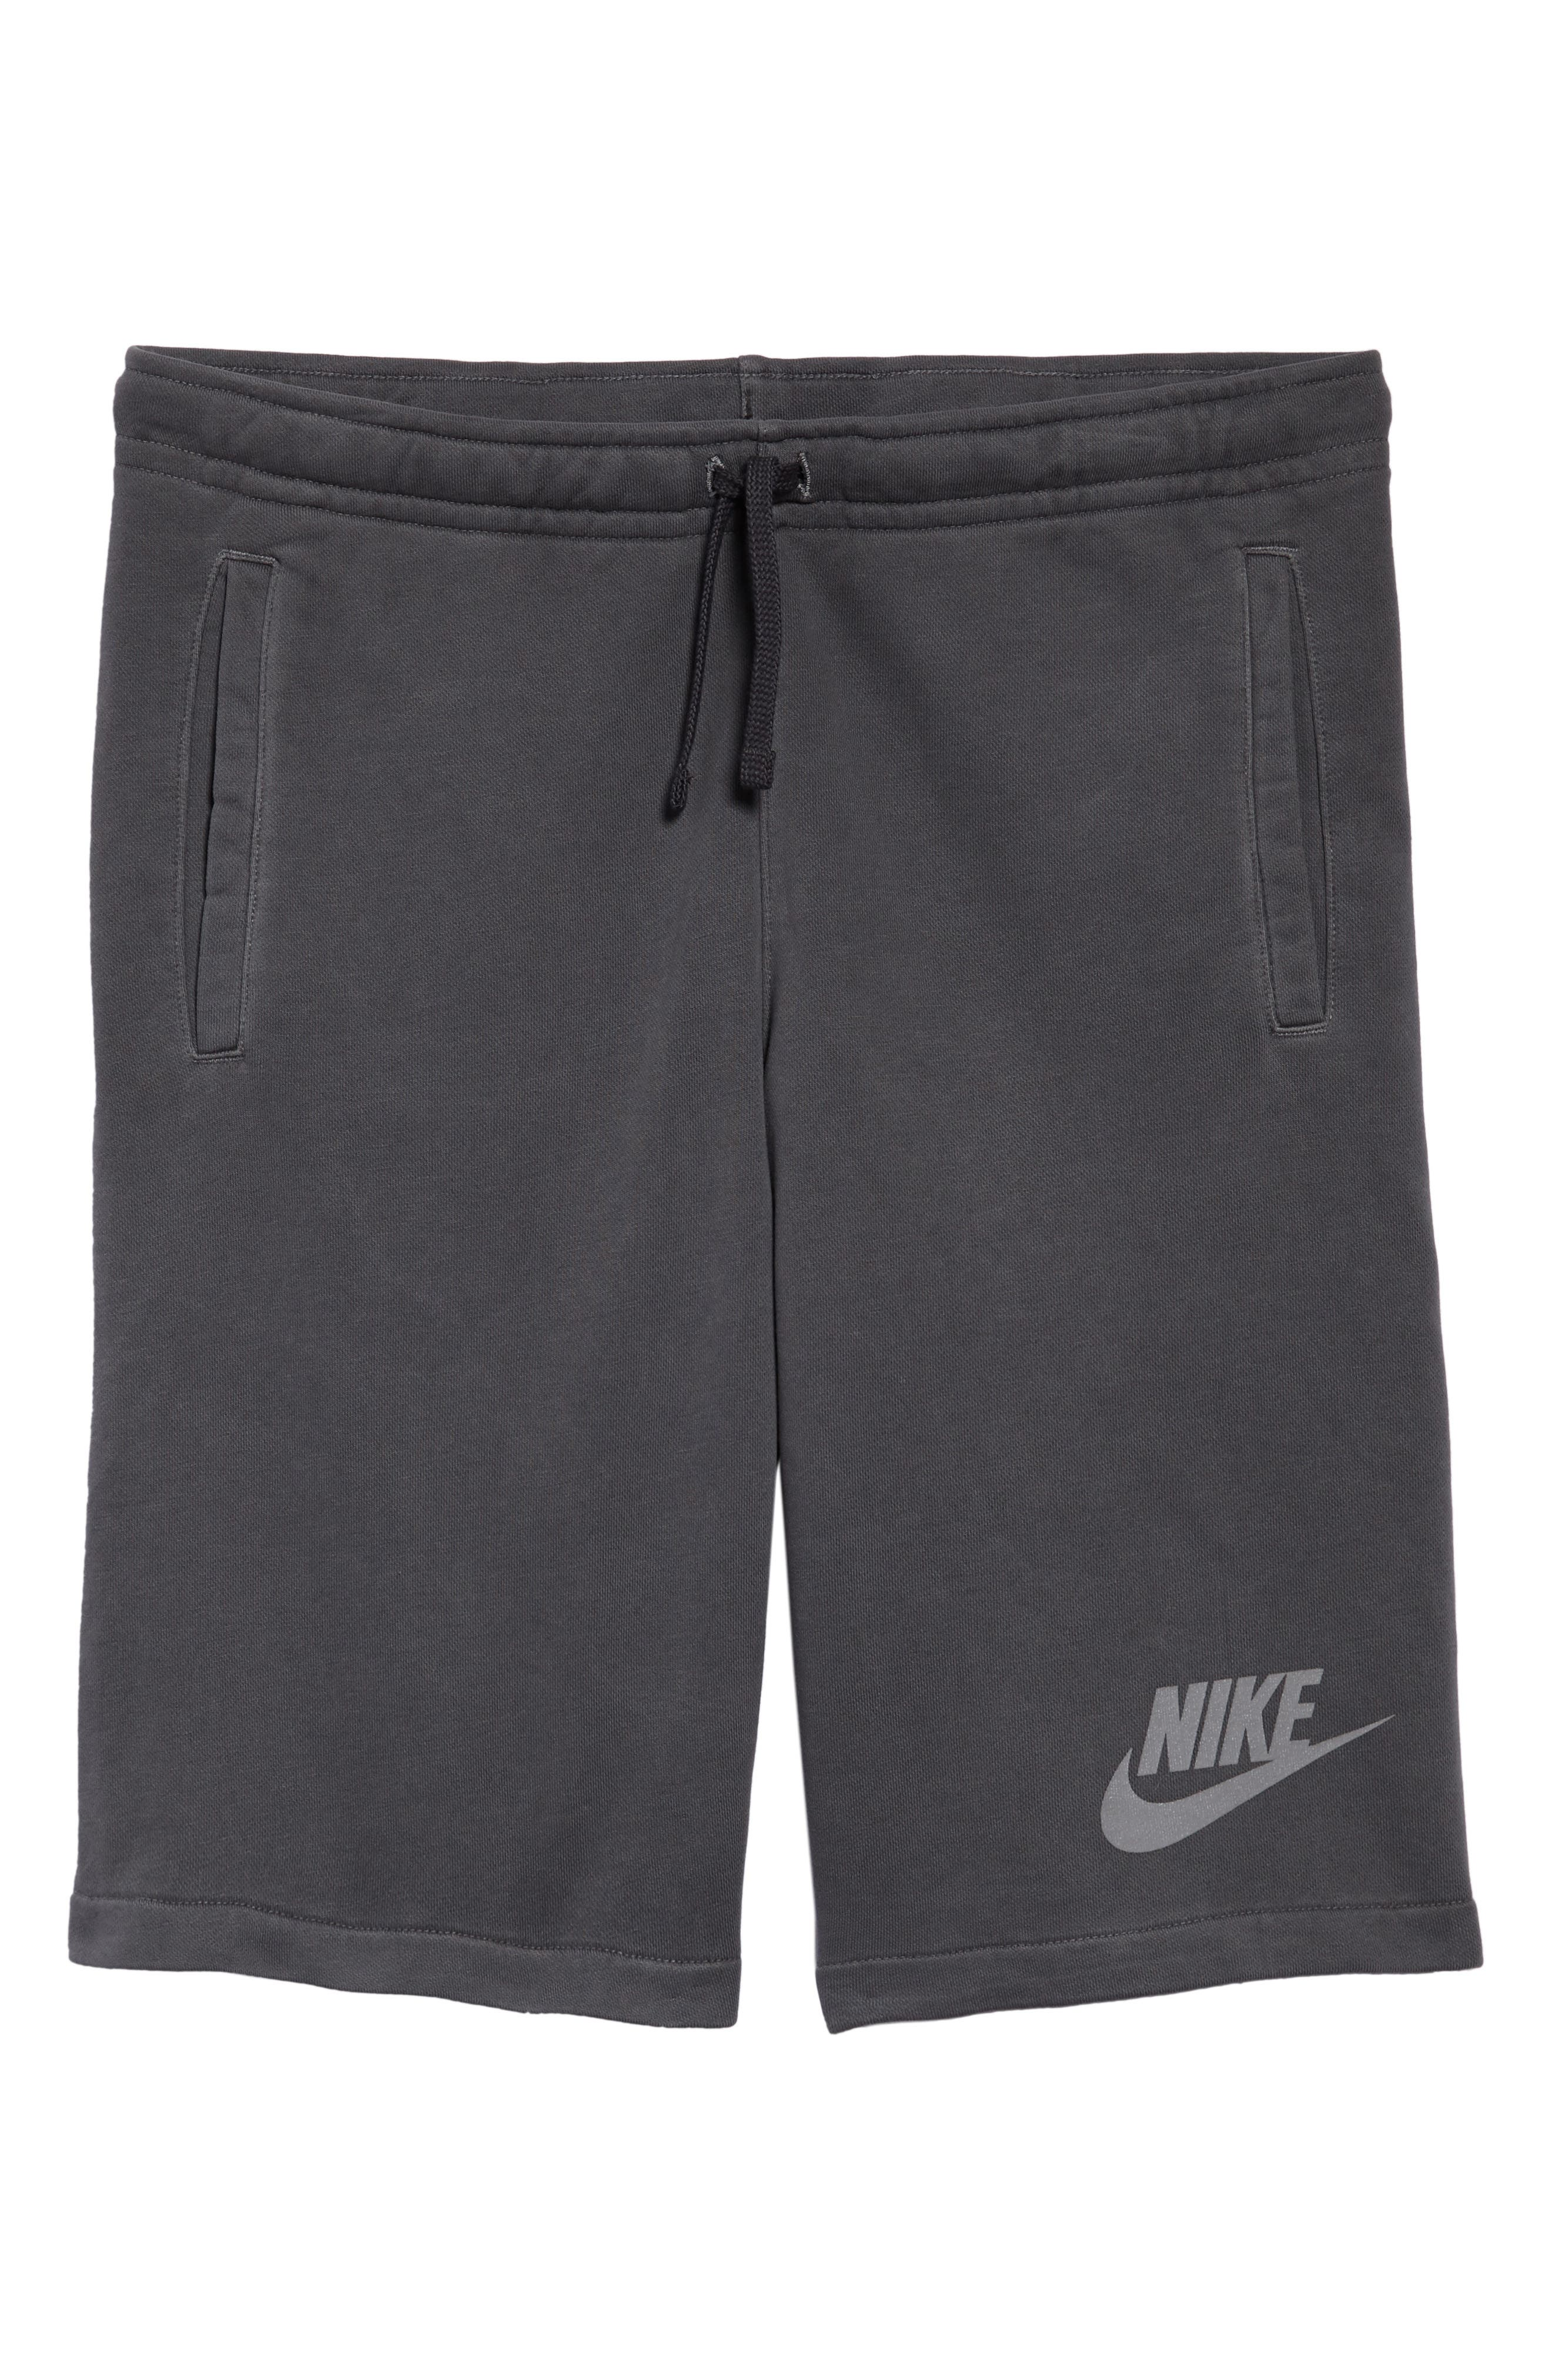 NSW Cotton Blend Shorts,                             Alternate thumbnail 6, color,                             Black/ Anthracite/ Cool Grey